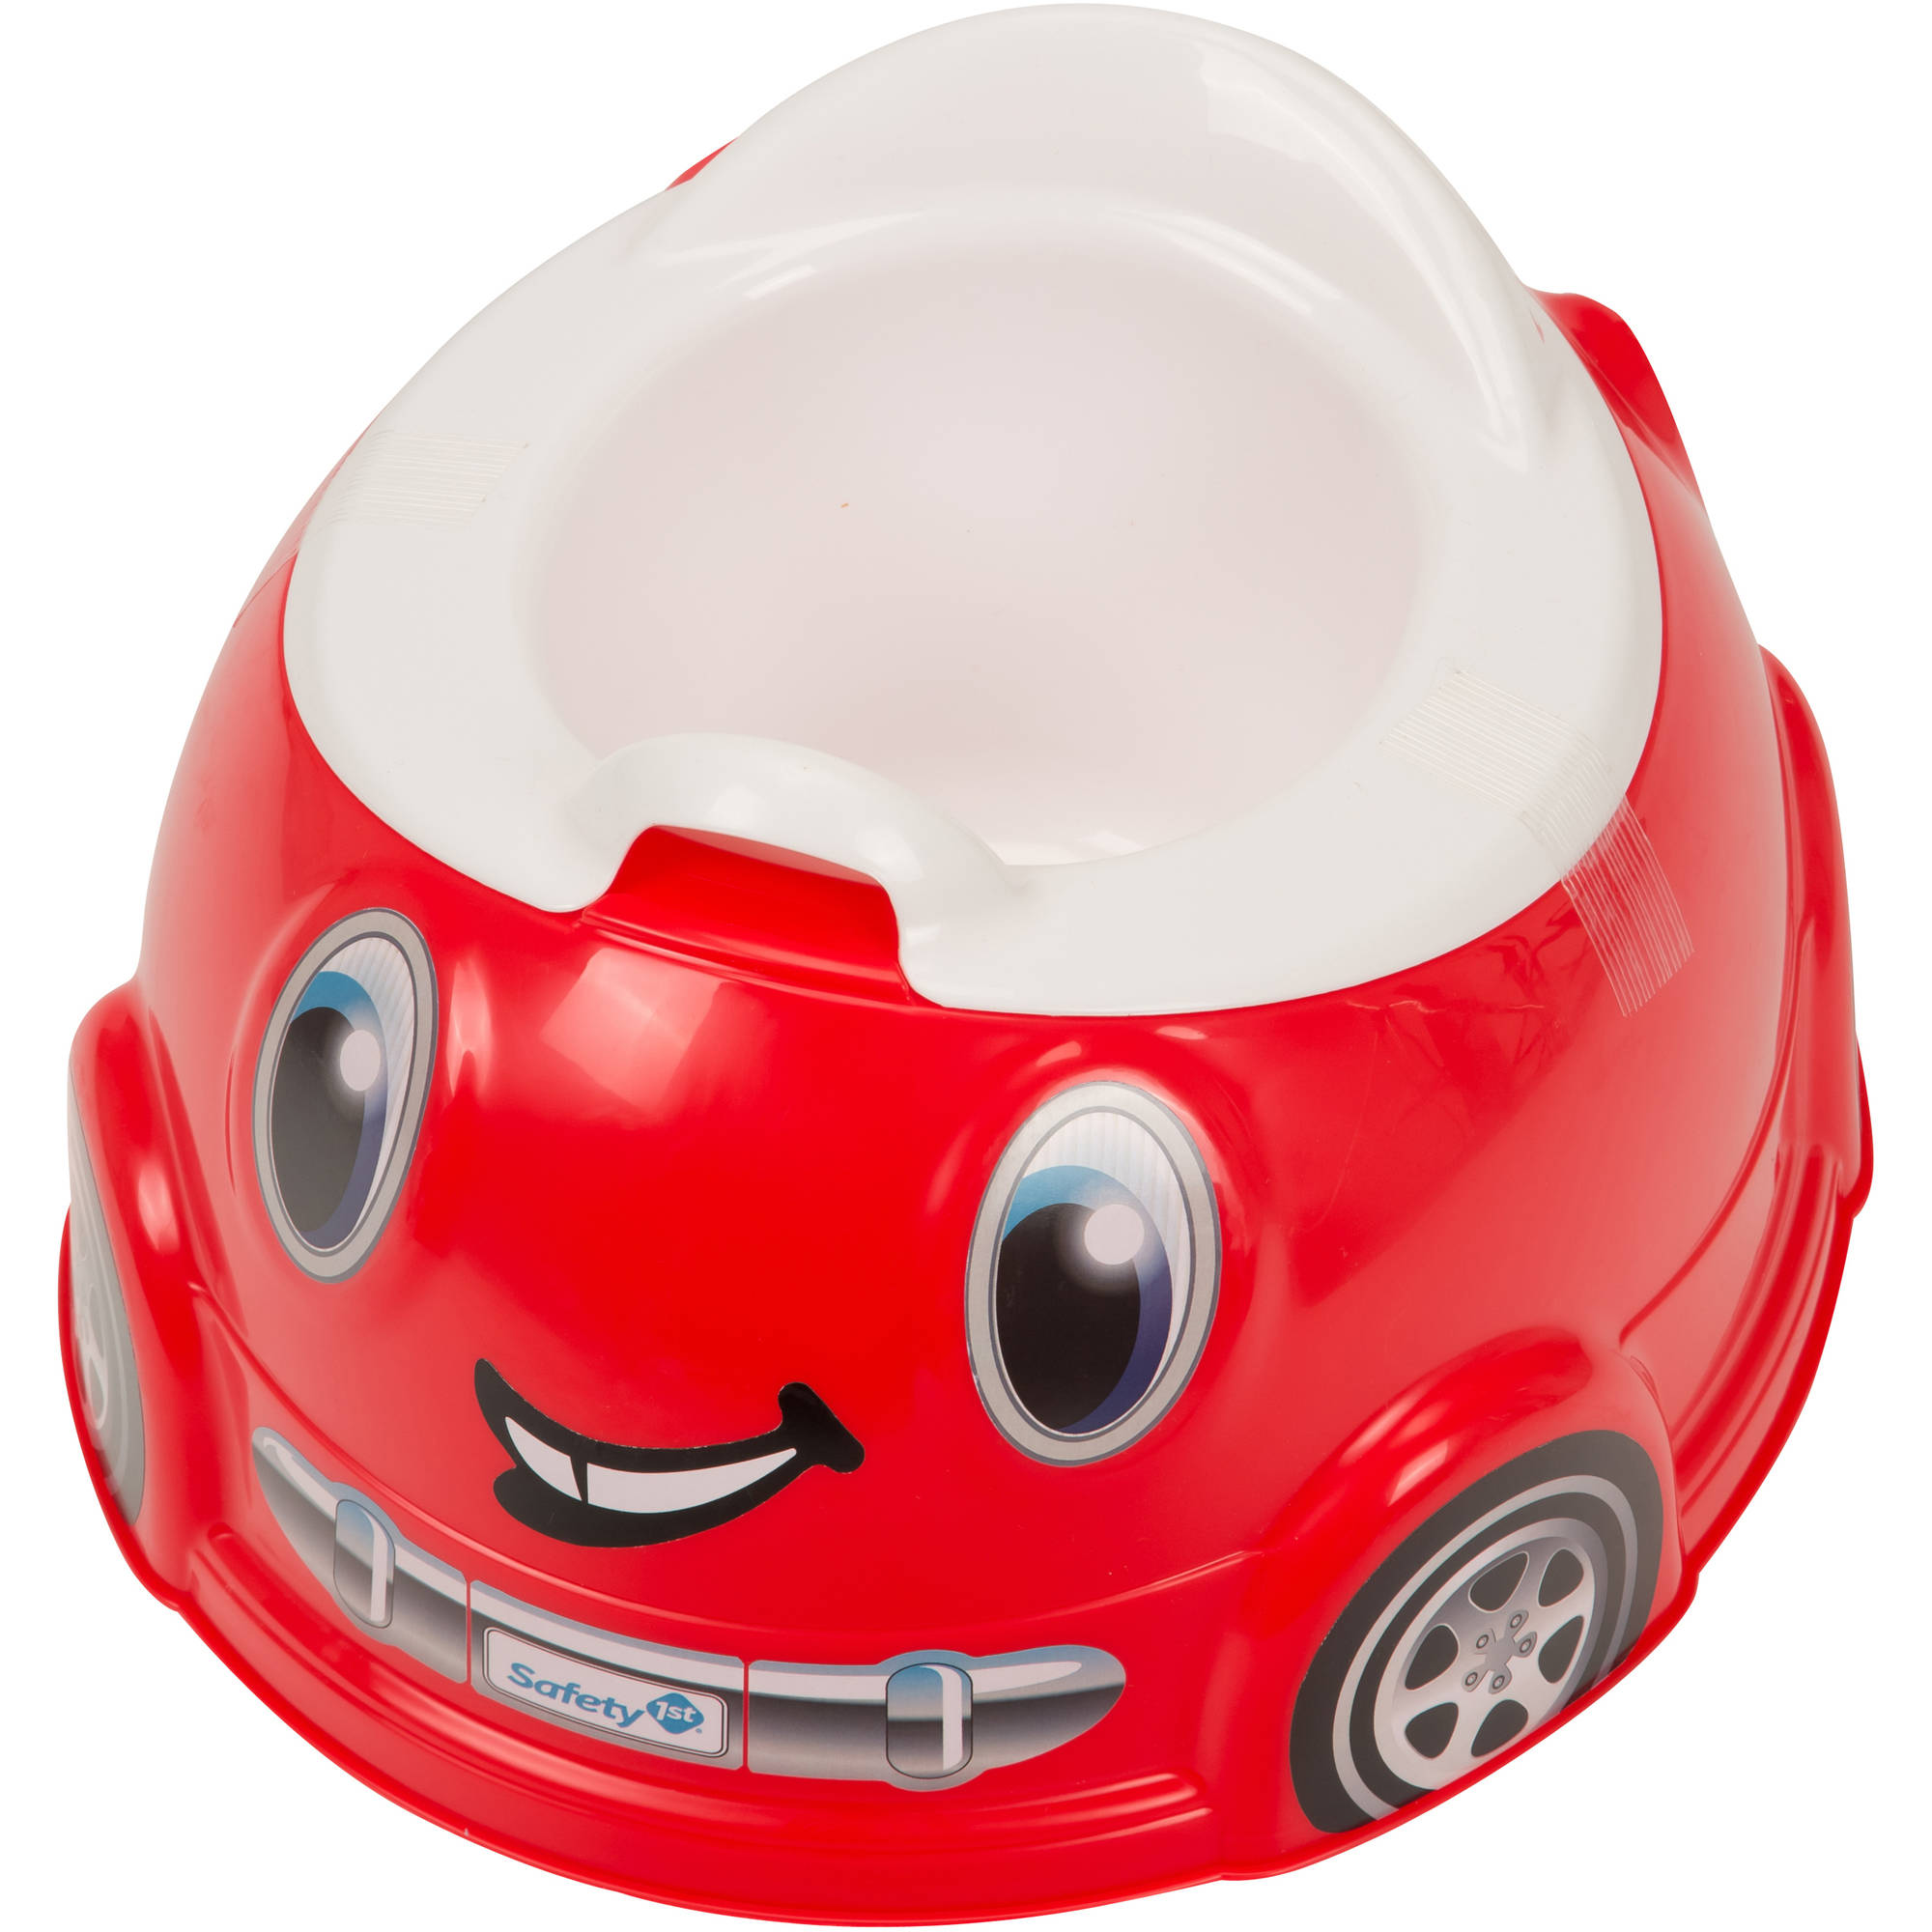 Safety 1st Fast and Finished Car Potty, Red